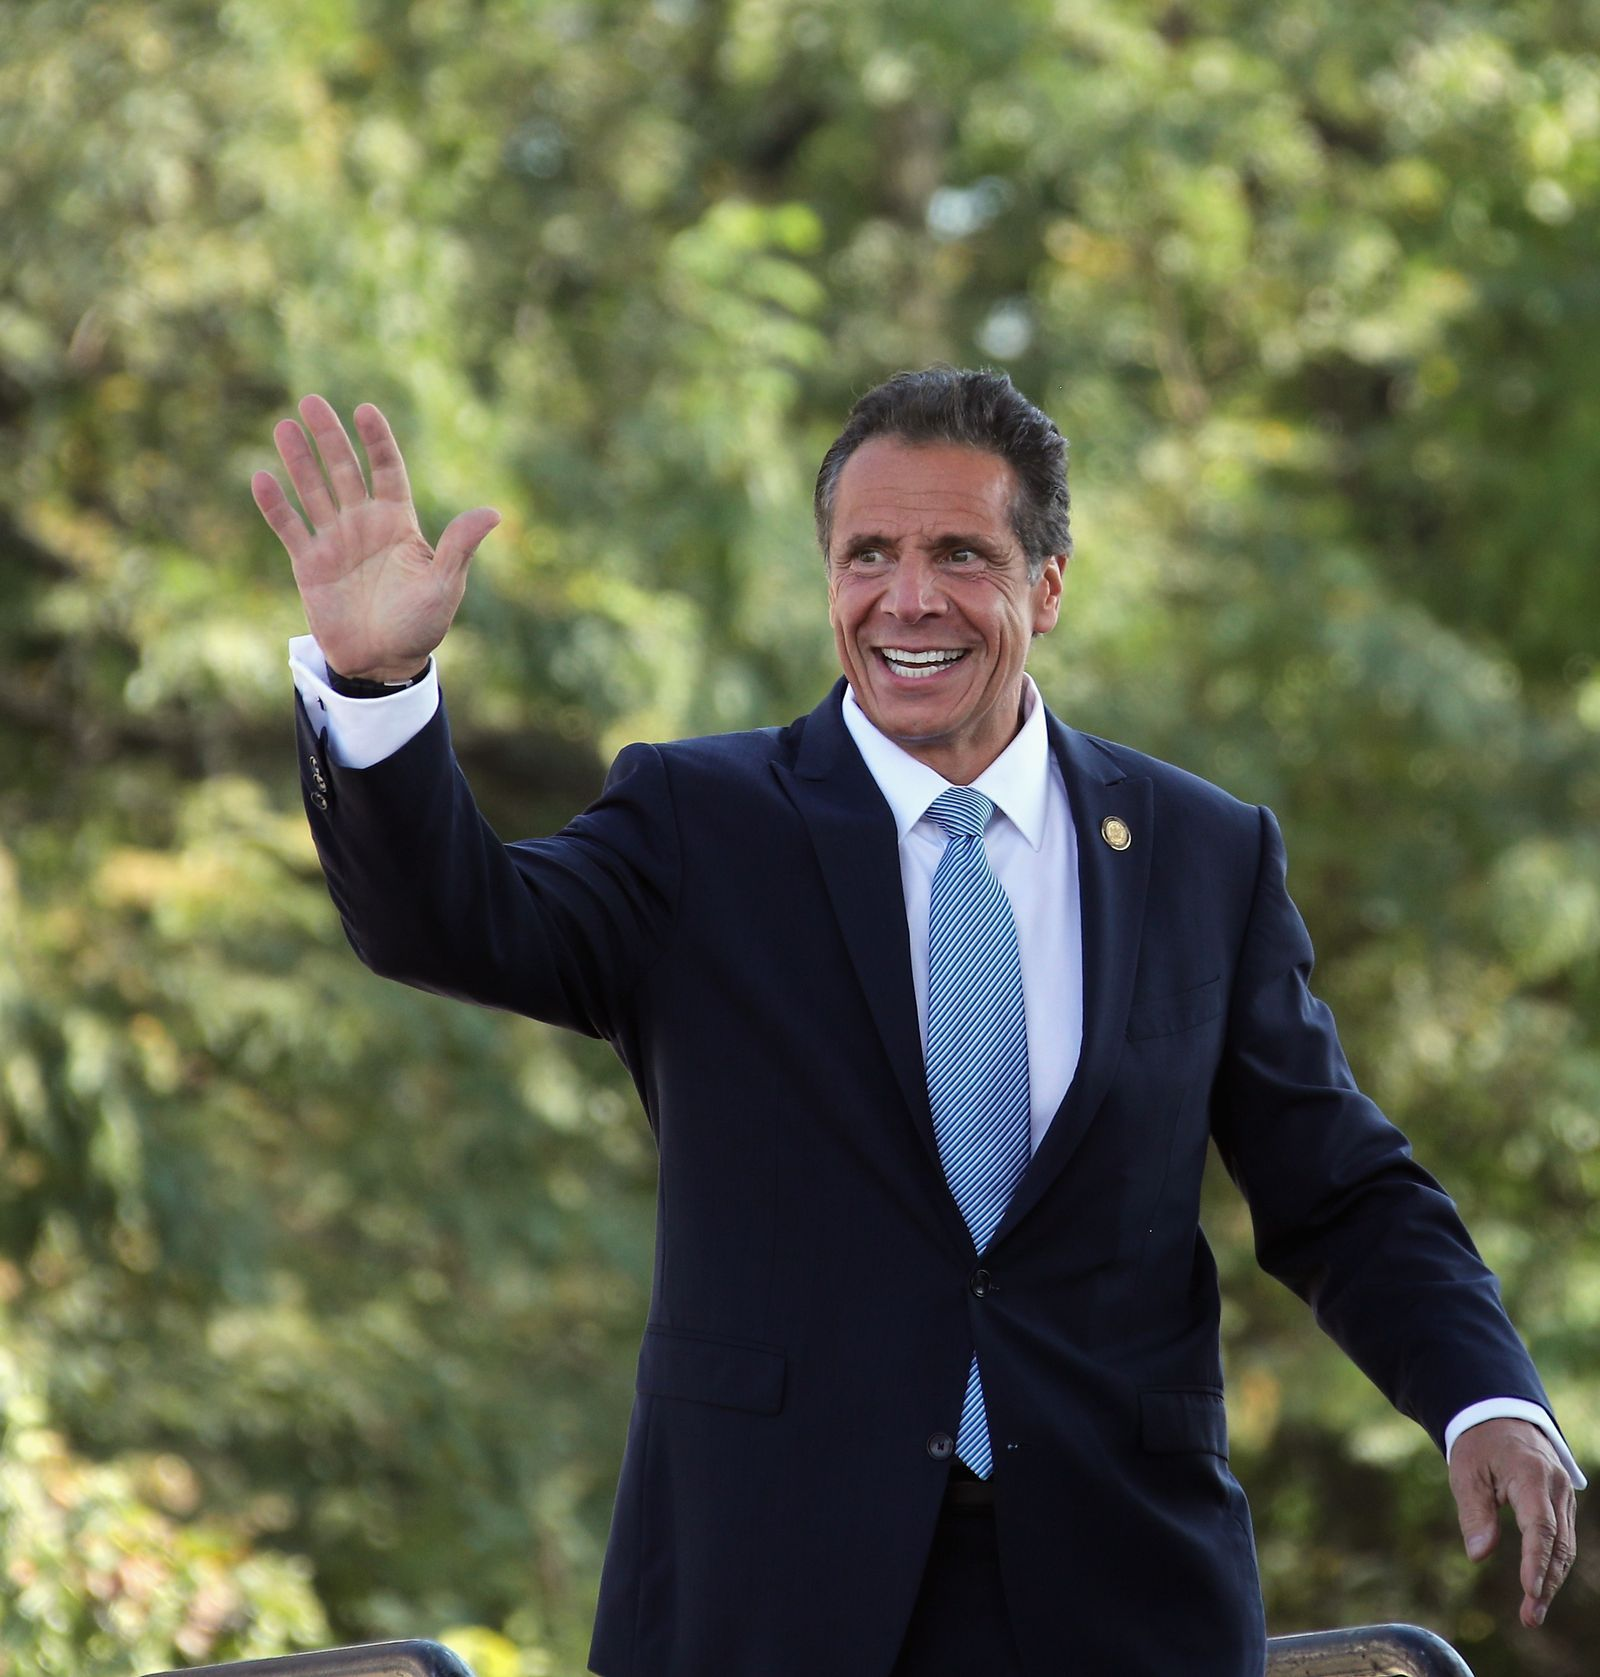 New York Governor Andrew Cuomo Knows He S Eligible In 2020 Andrew Cuomo Andrew Celebrities Female